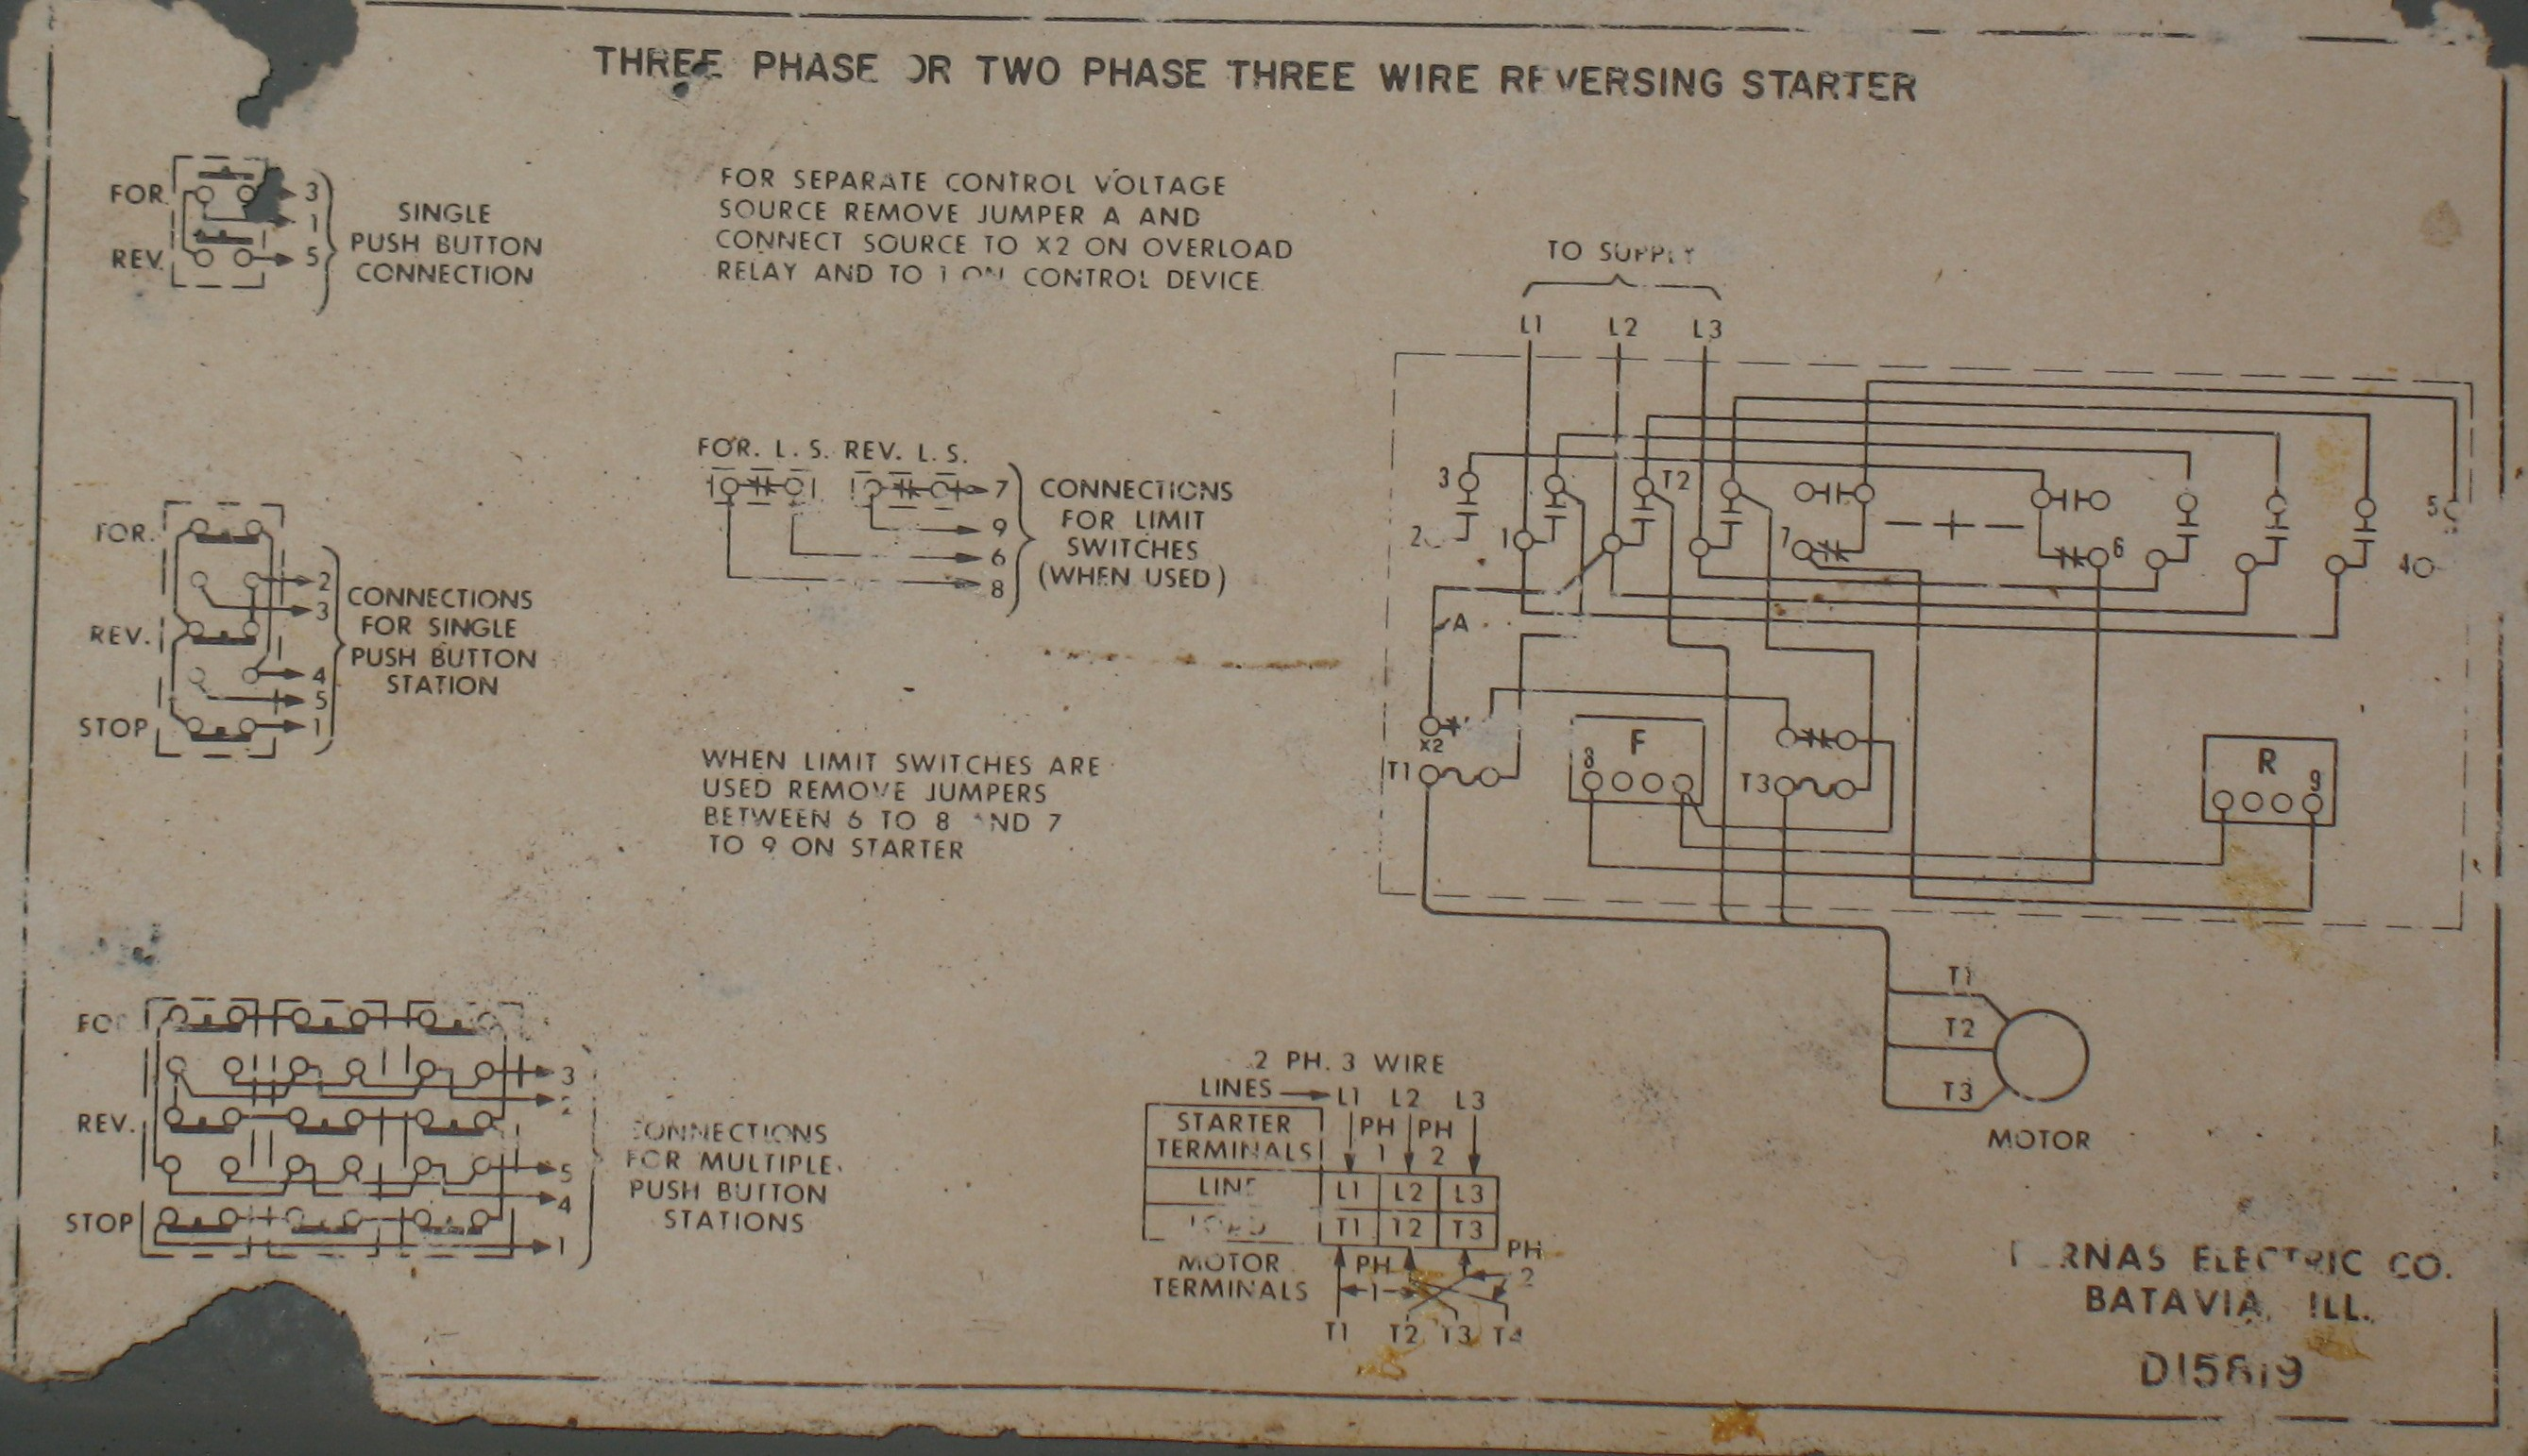 old ge motor wiring diagram old image wiring diagram old ge motor wiring diagram old auto wiring diagram schematic on old ge motor wiring diagram